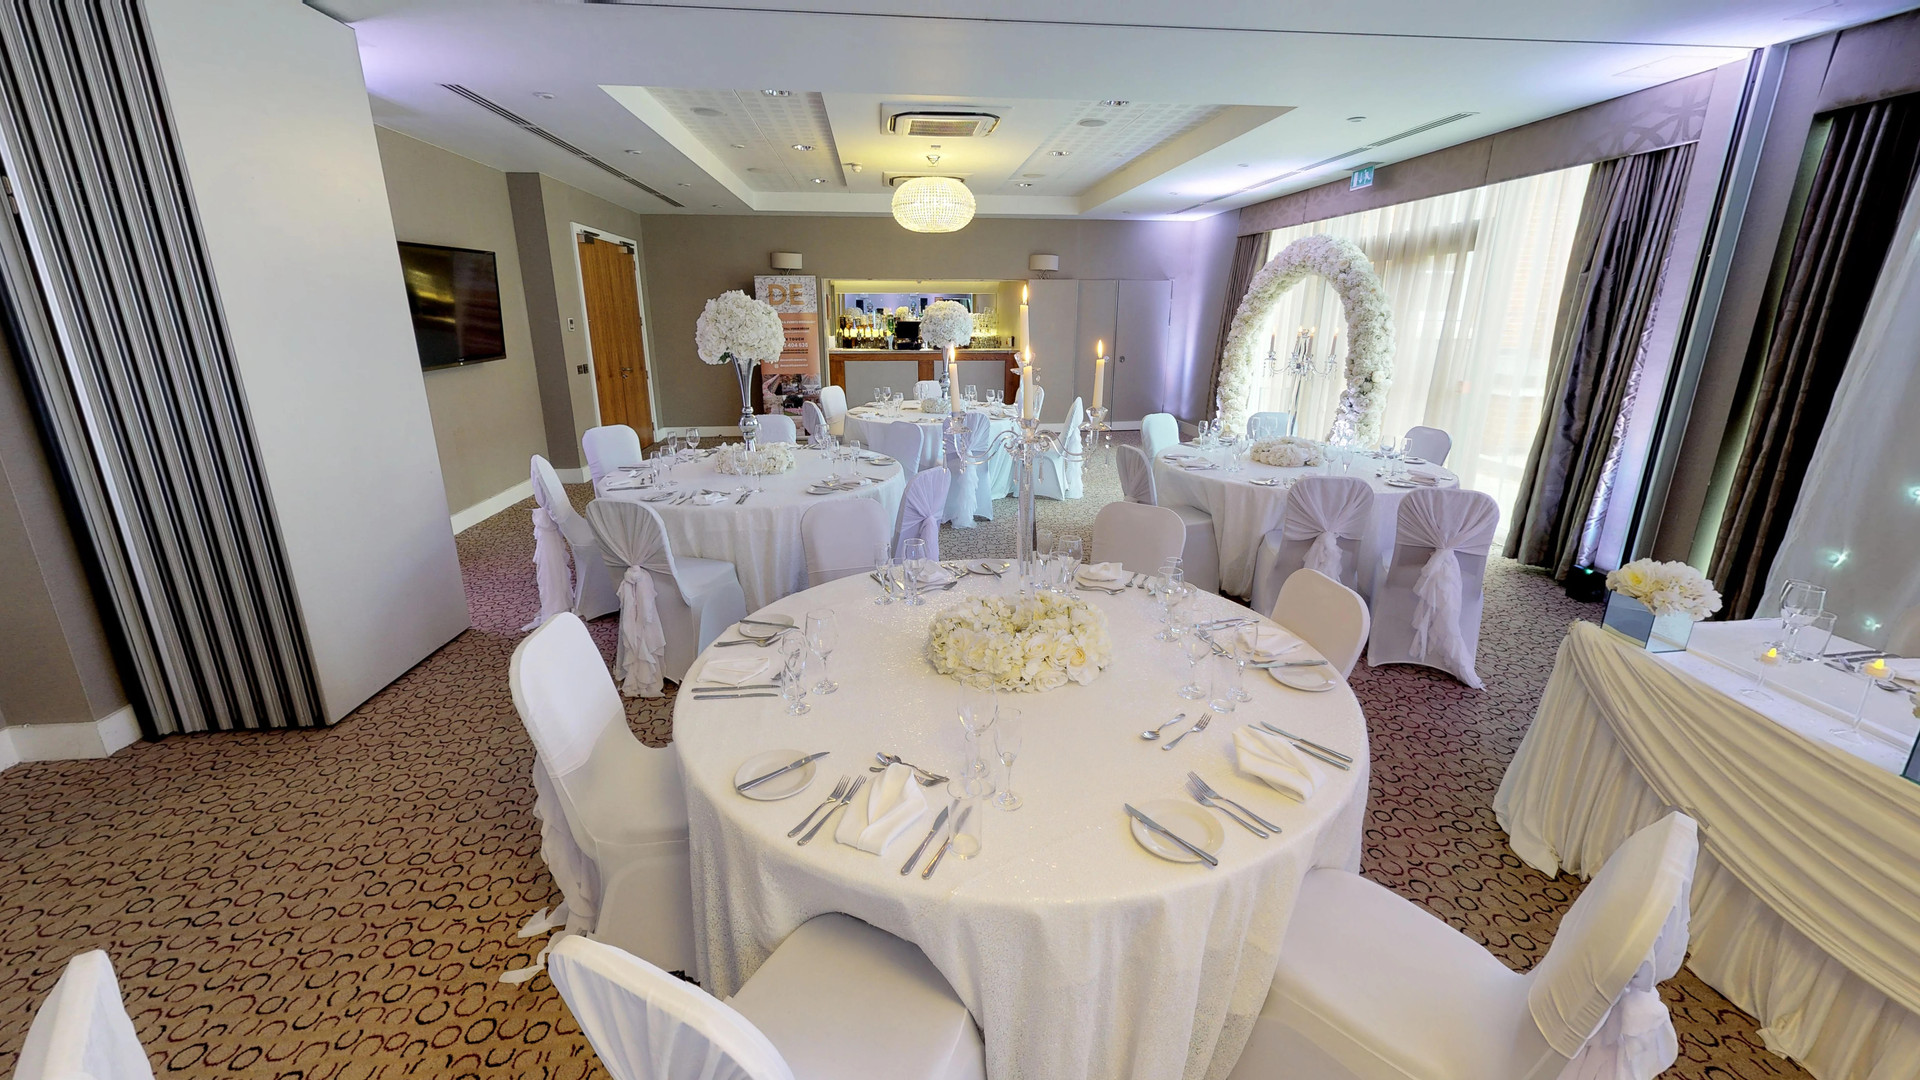 Wivenhoe-House-Hotel-Reception-Room-0513